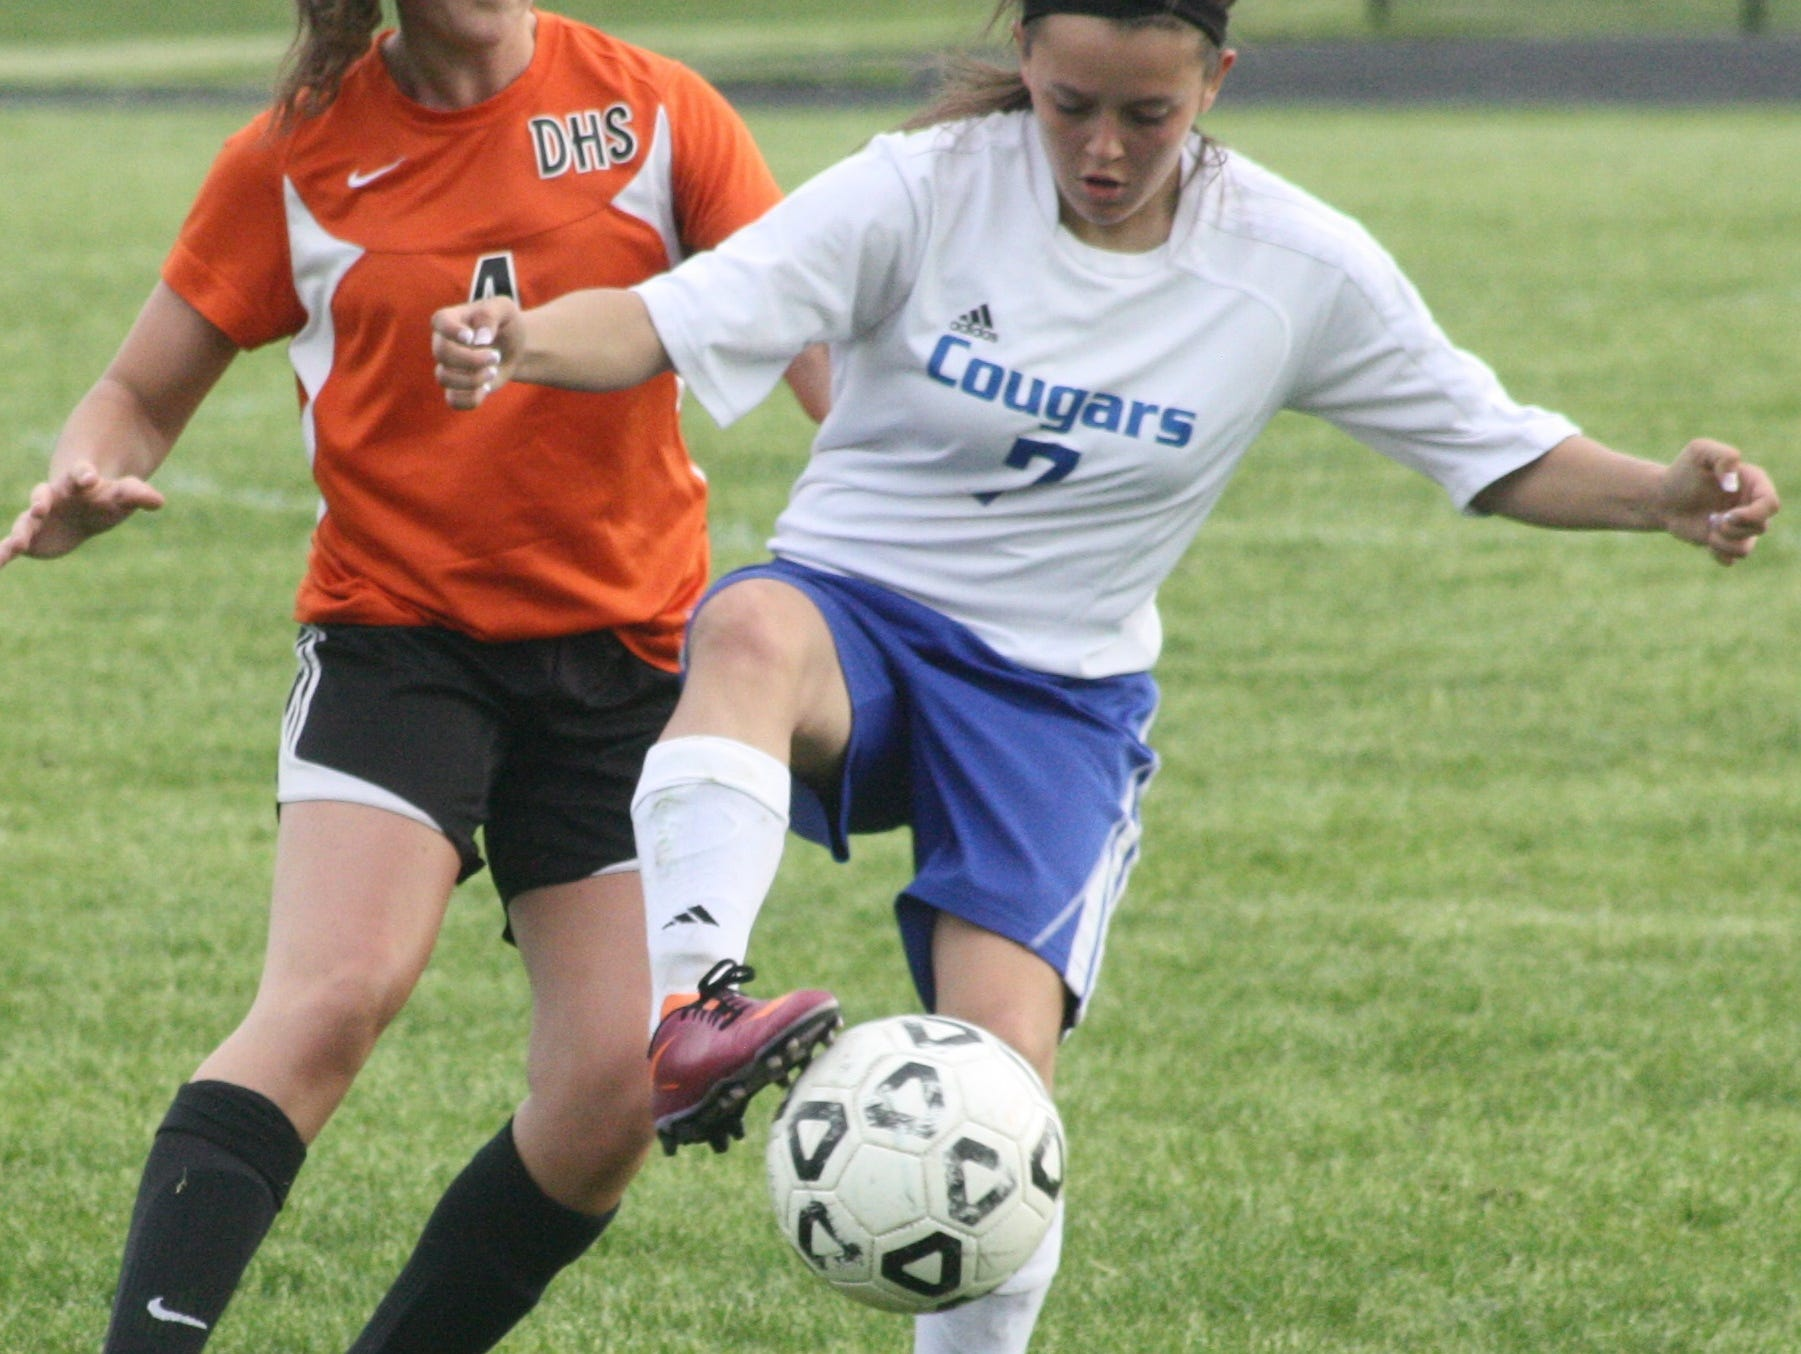 Gabby Castillo settles the ball during Monday's game against Dearborn.